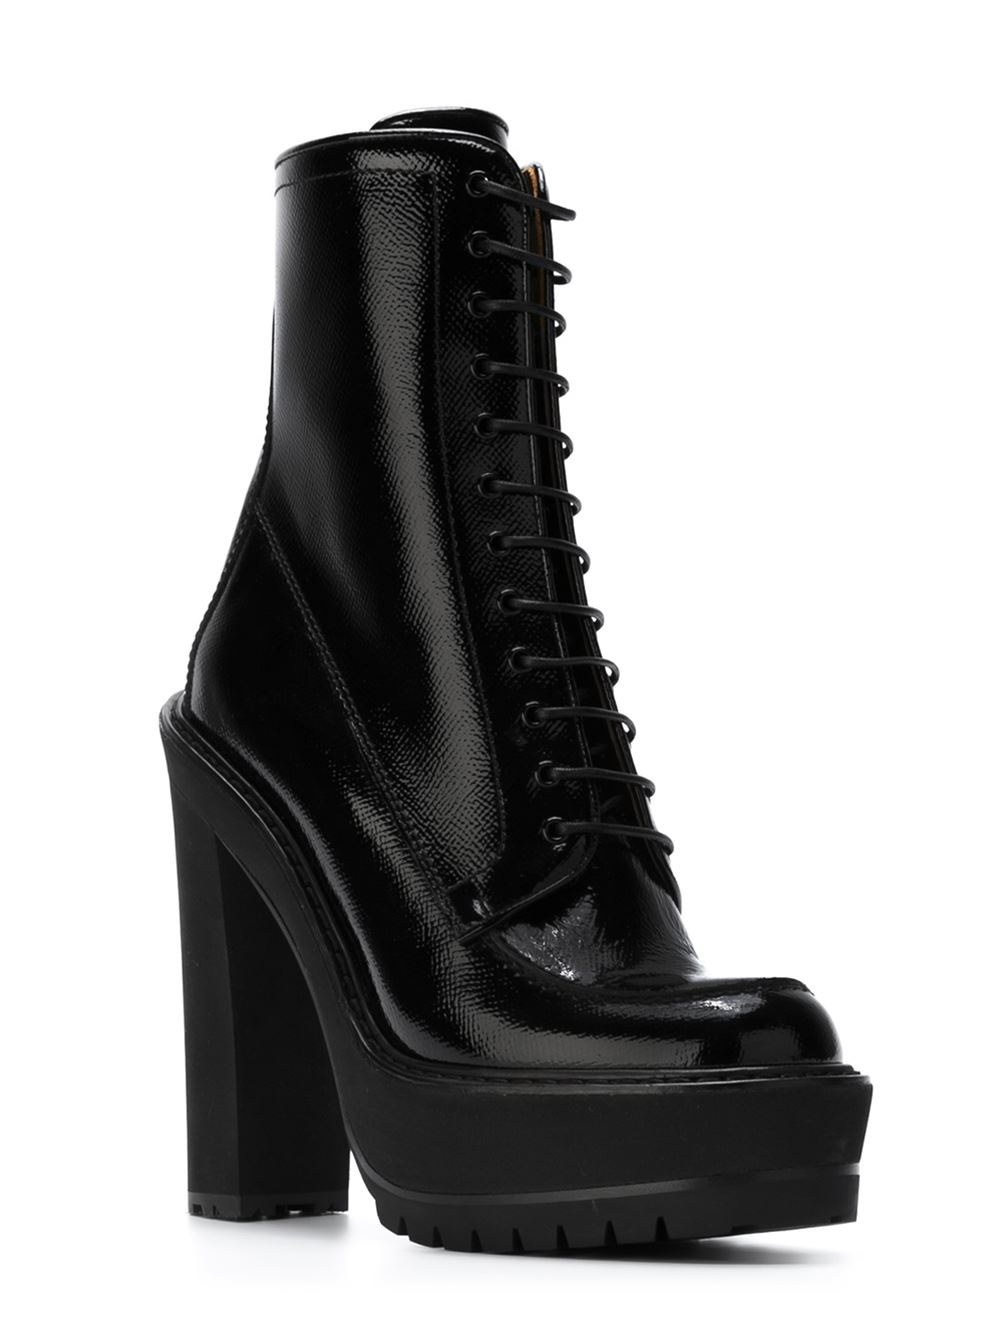 Givenchy Leather Lace-up Platform Boots in Black